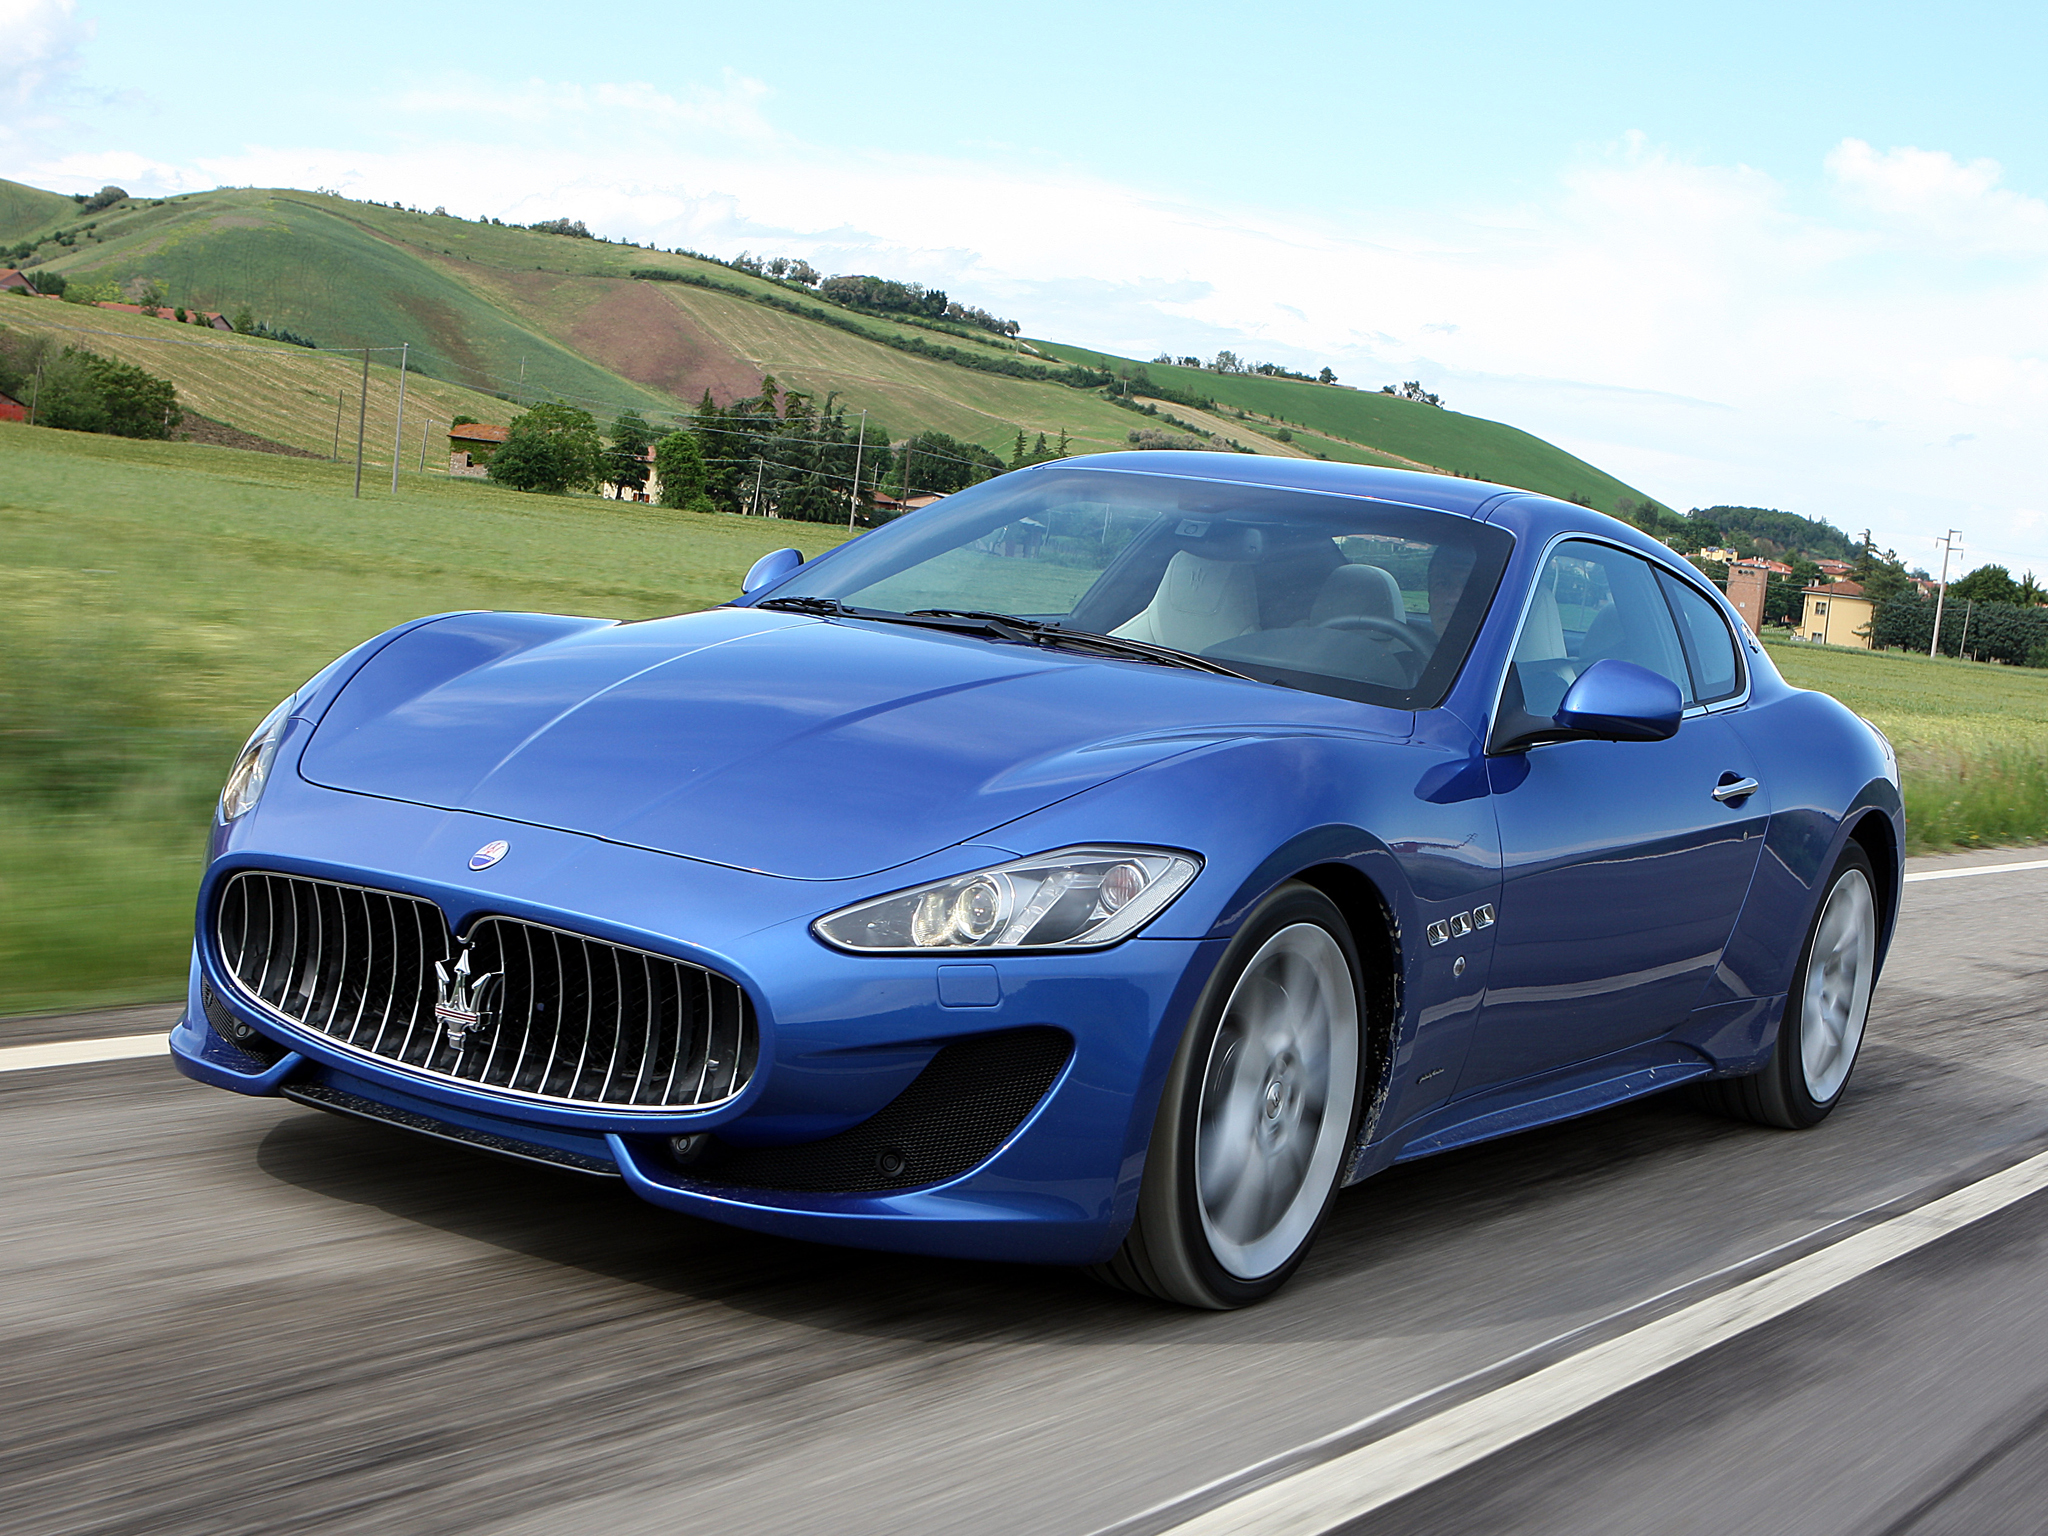 150682 download wallpaper Cars, Maserati, Granturismo, Side View, Speed screensavers and pictures for free